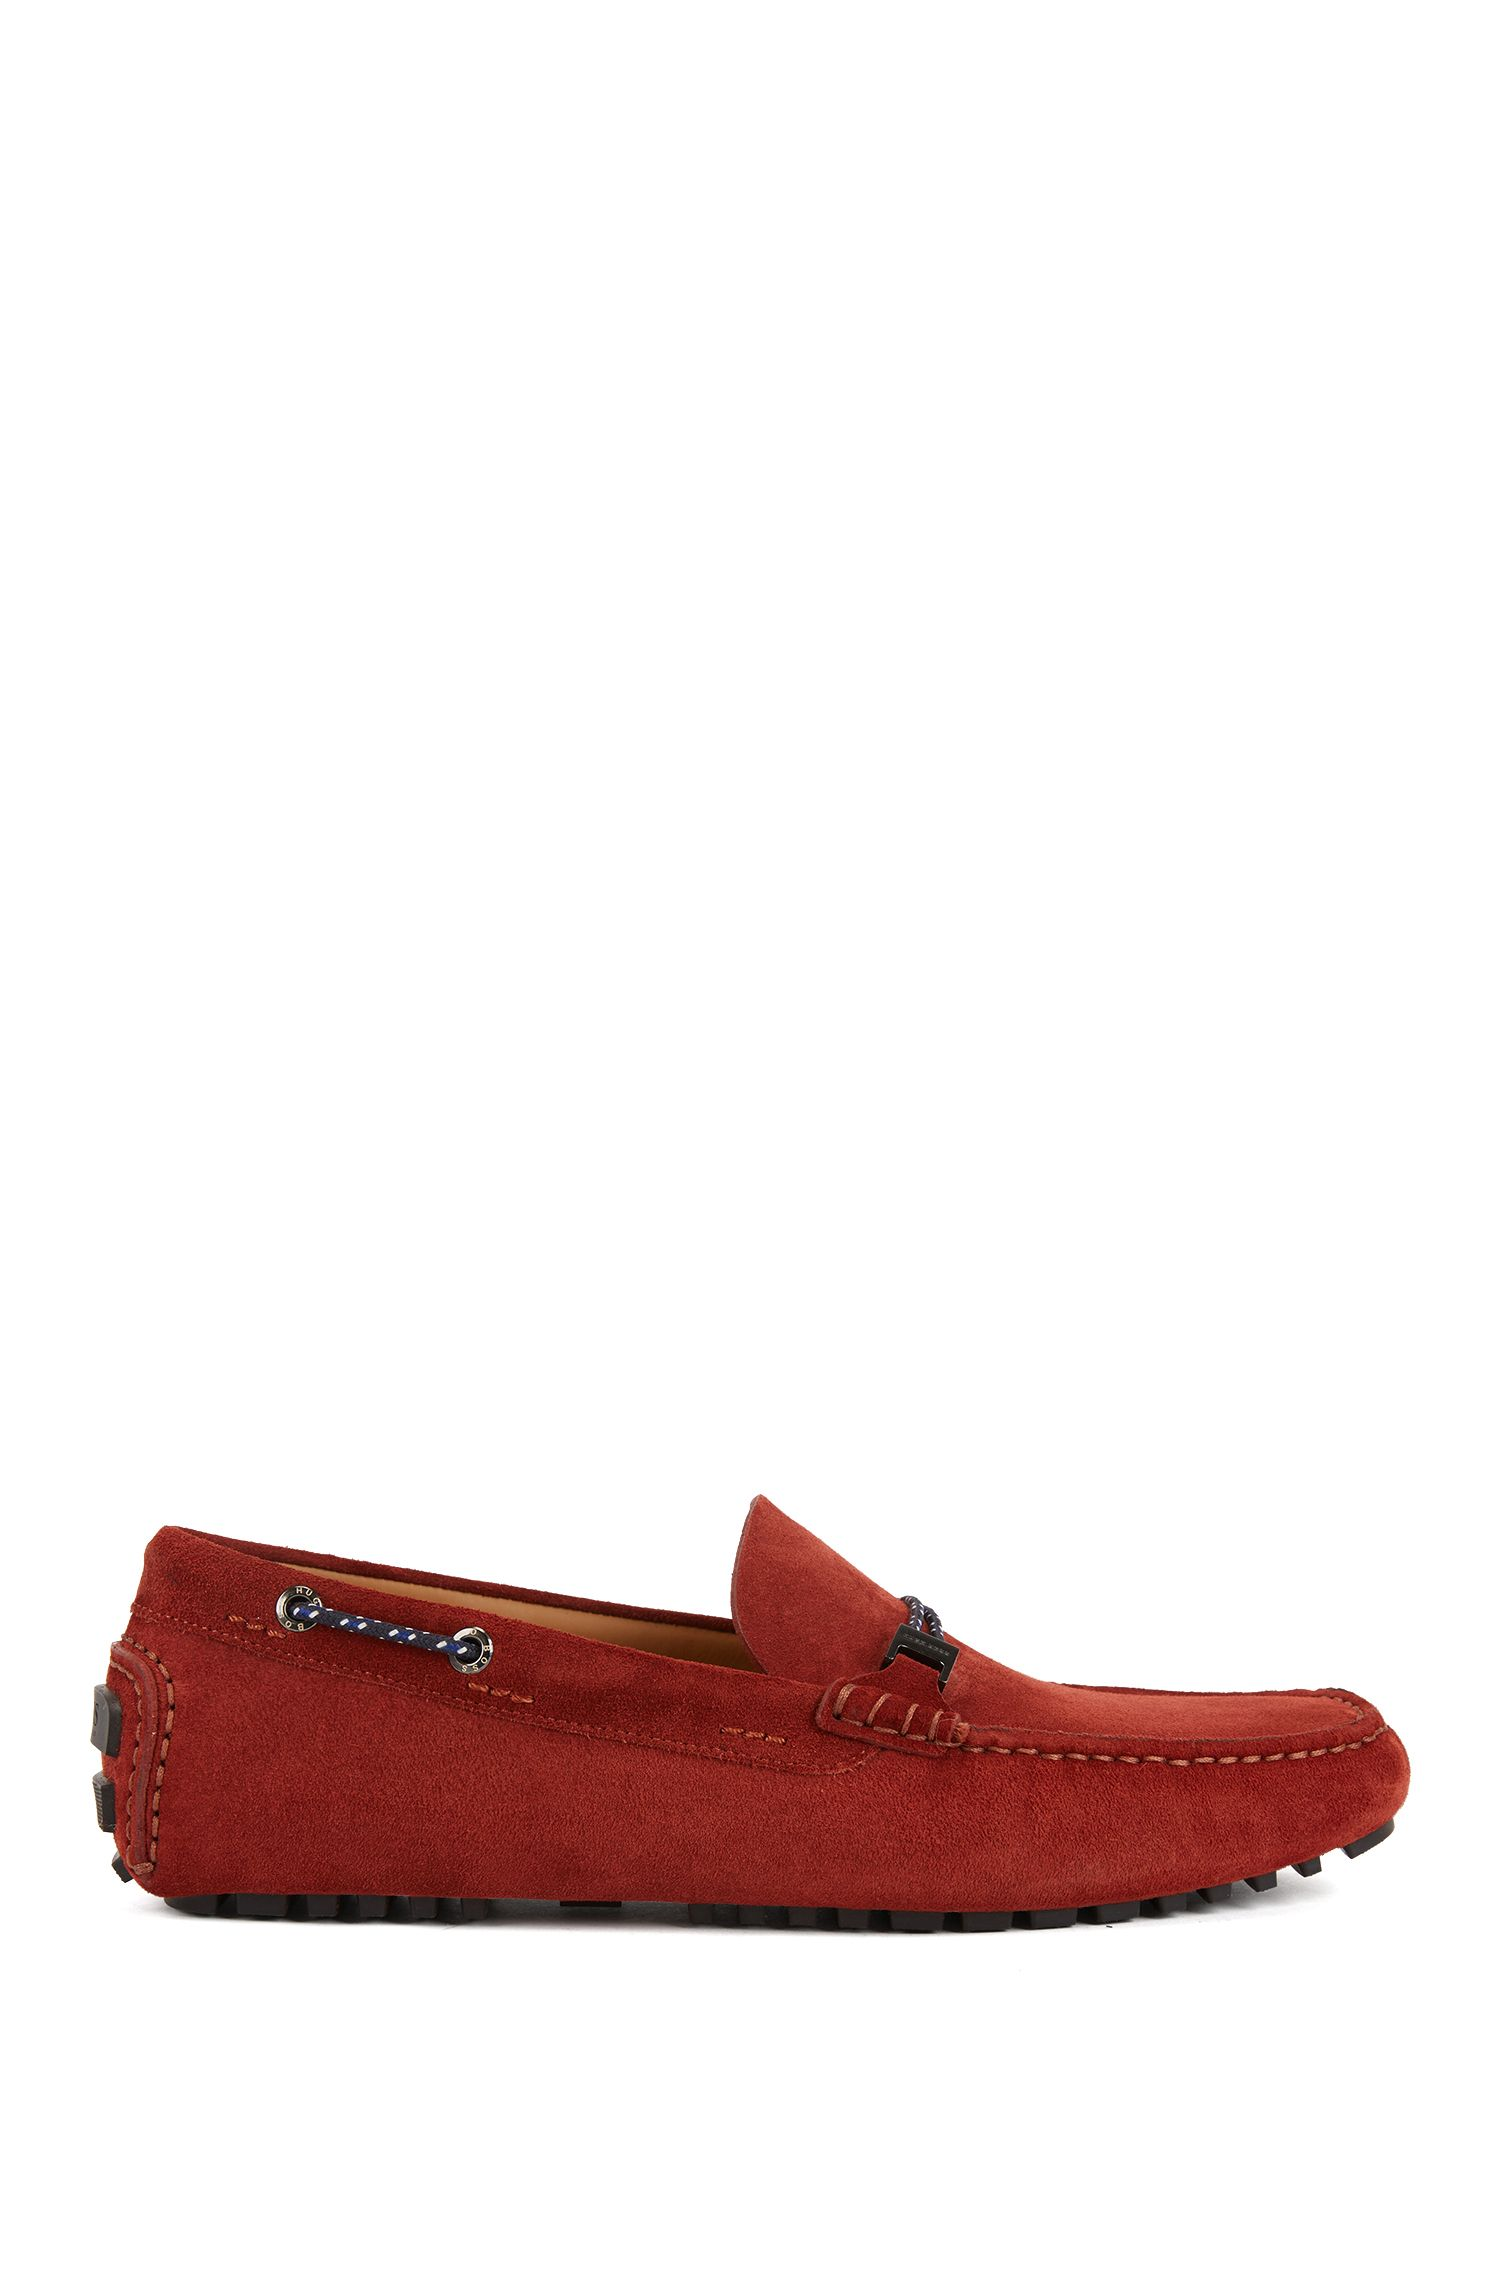 Italian-made suede moccasins with woven cord